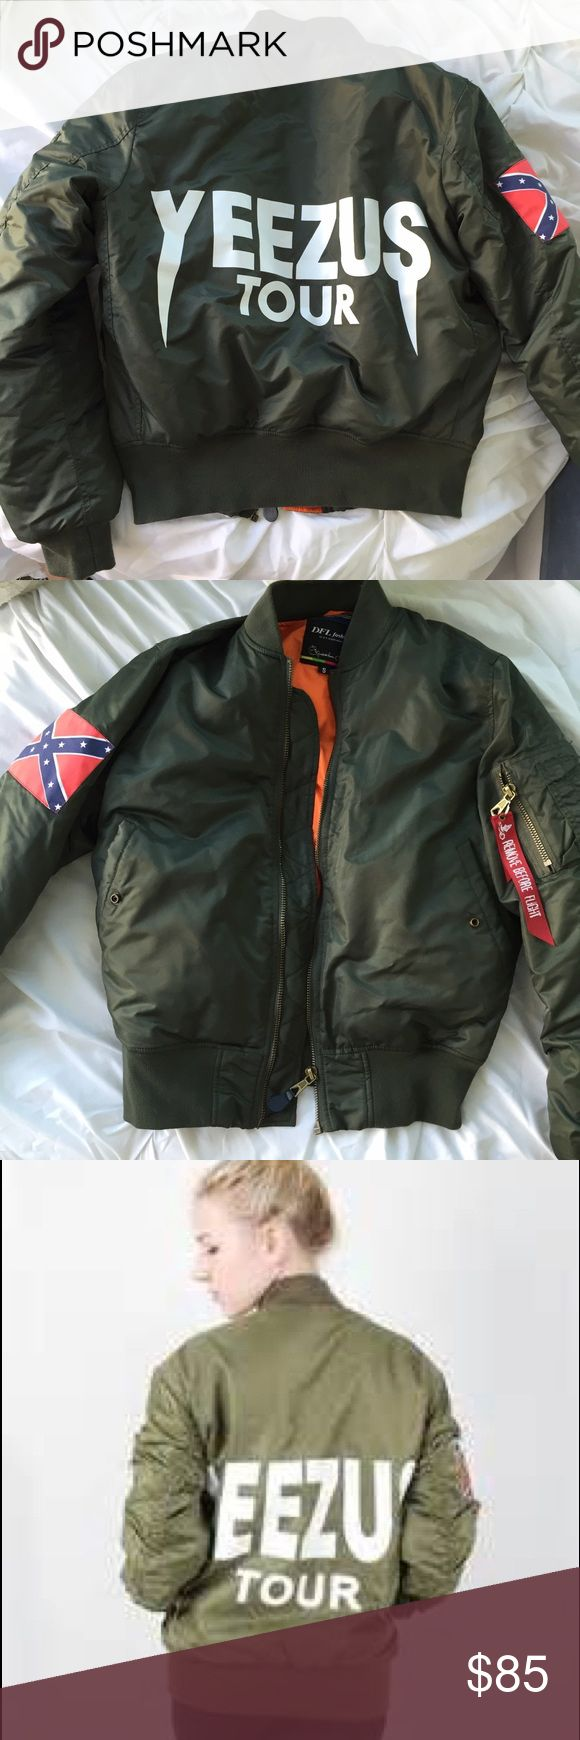 Green yeezus tour bomber jacket Worn once. Amazing quality. Runs big Yeezy Jackets & Coats Puffers